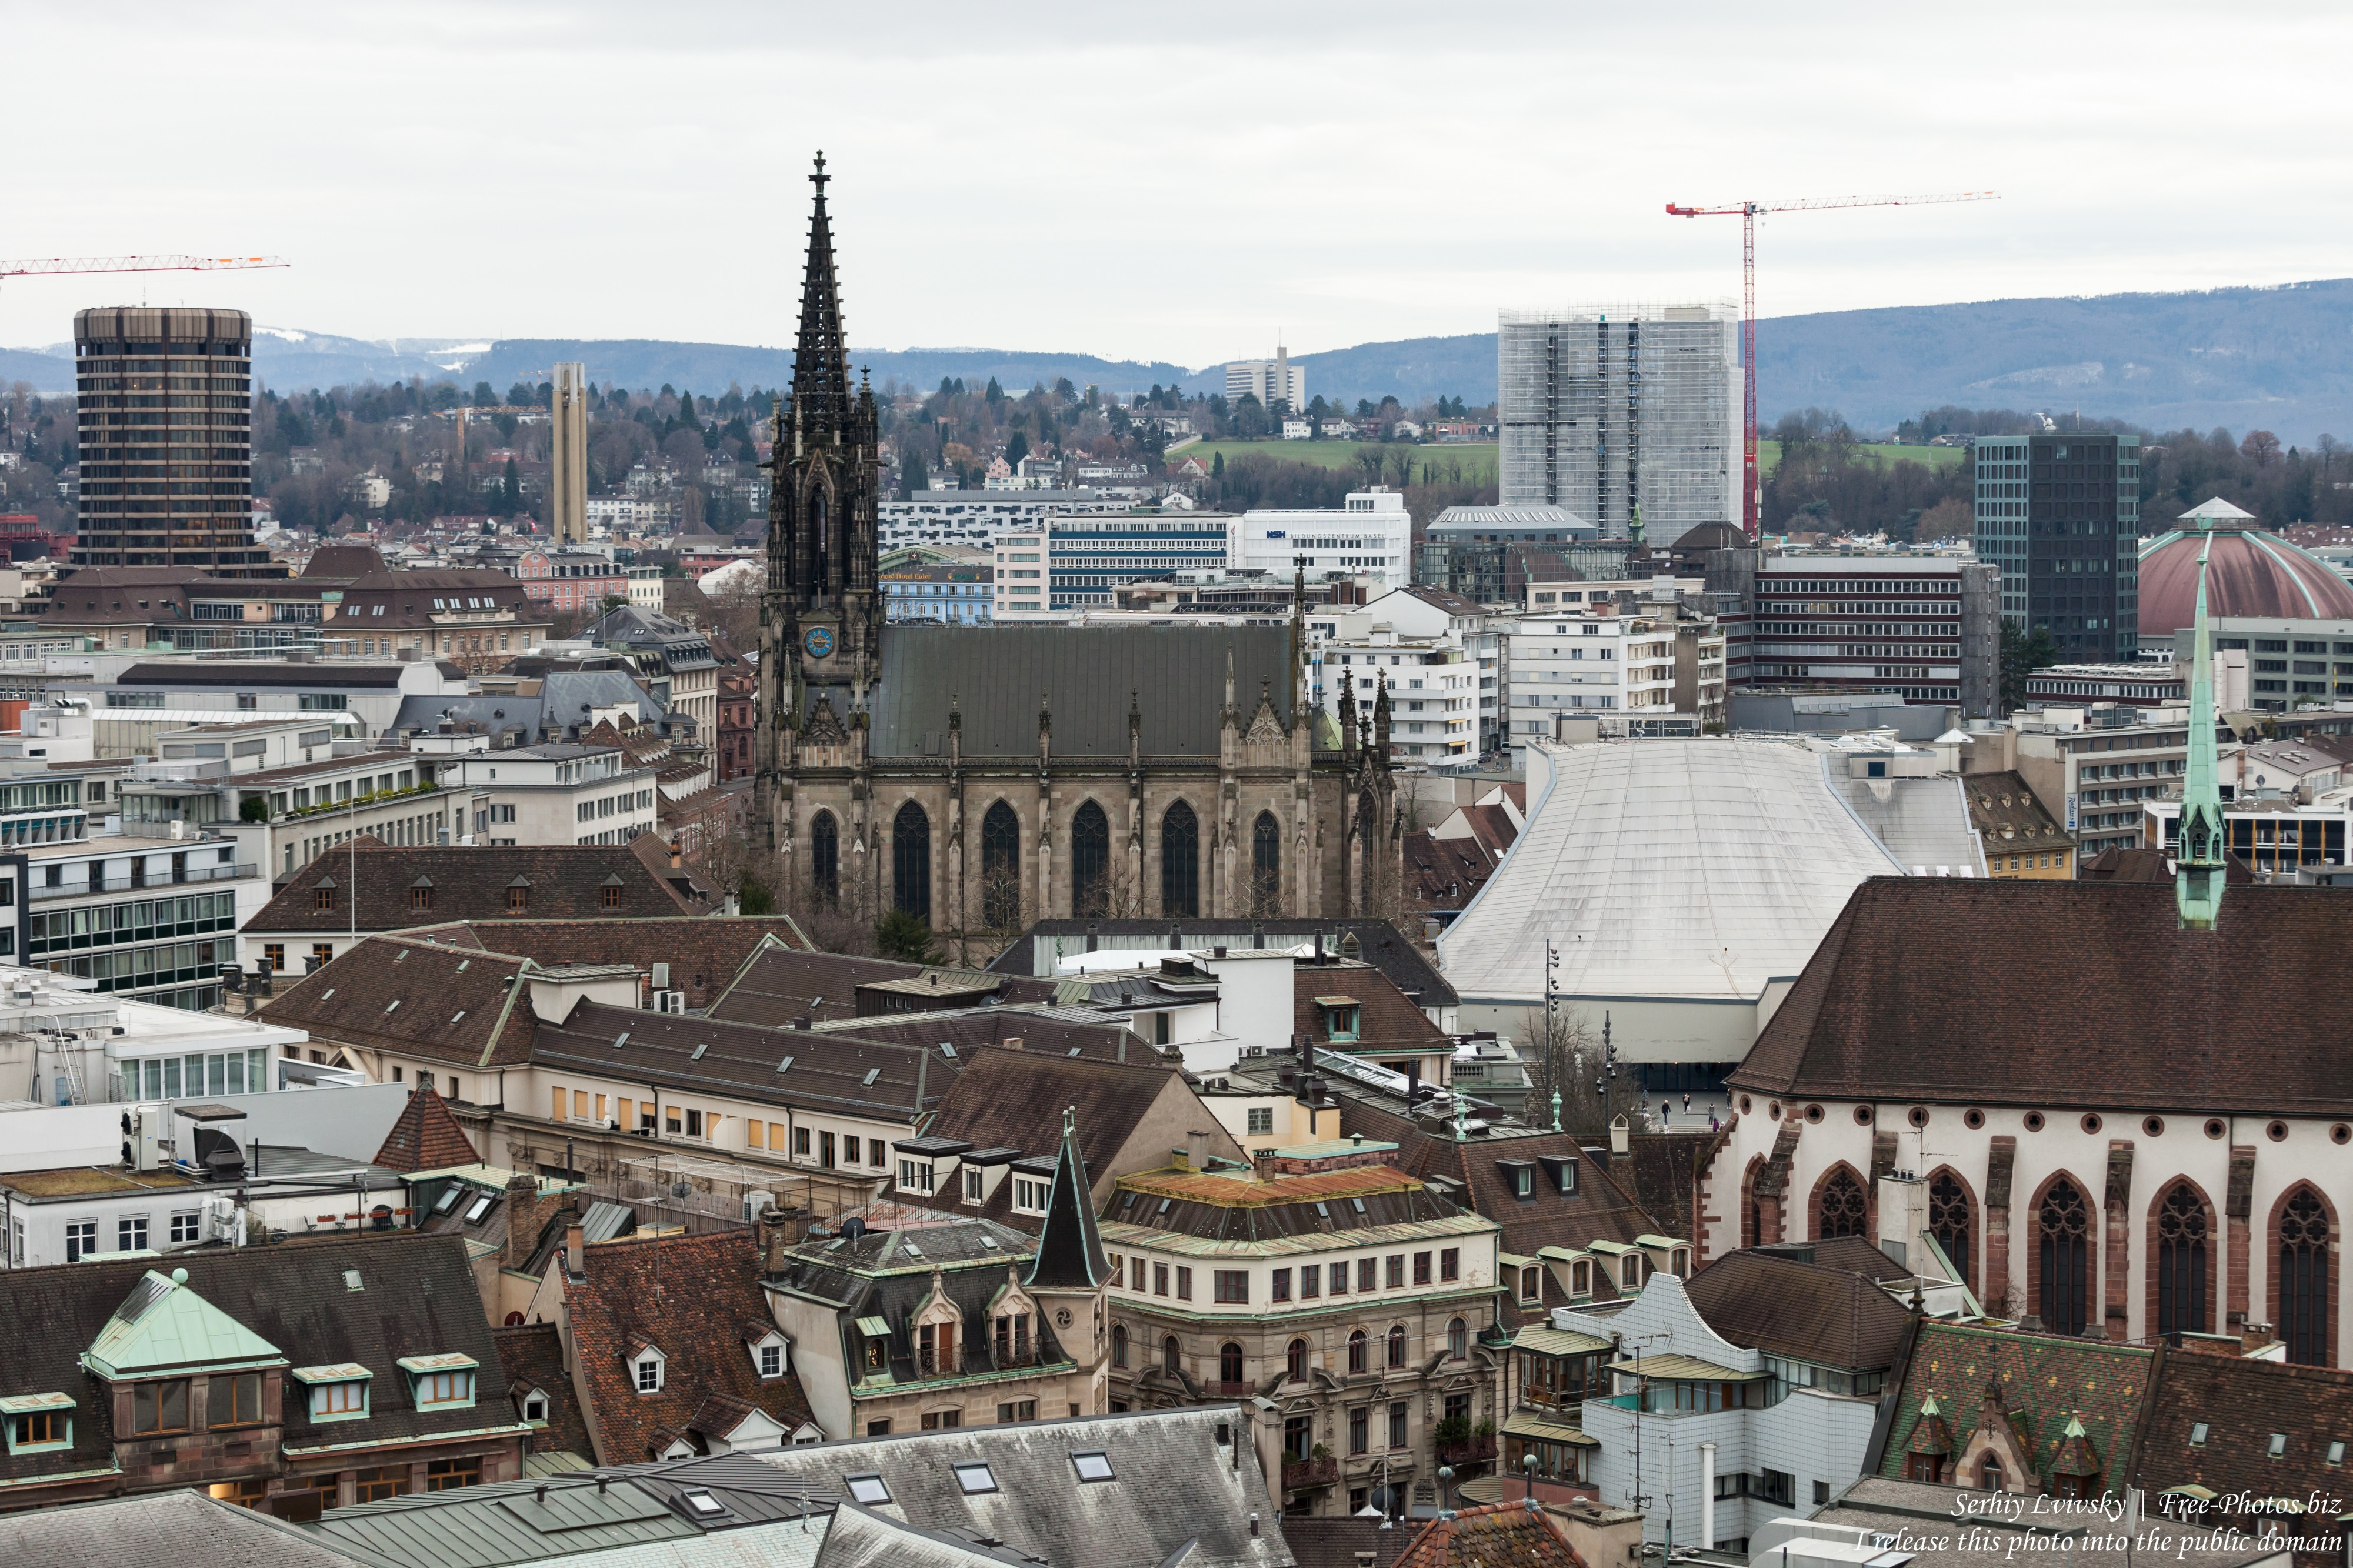 Basel, Switzerland photographed in December 2017 by Serhiy Lvivsky, picture 16